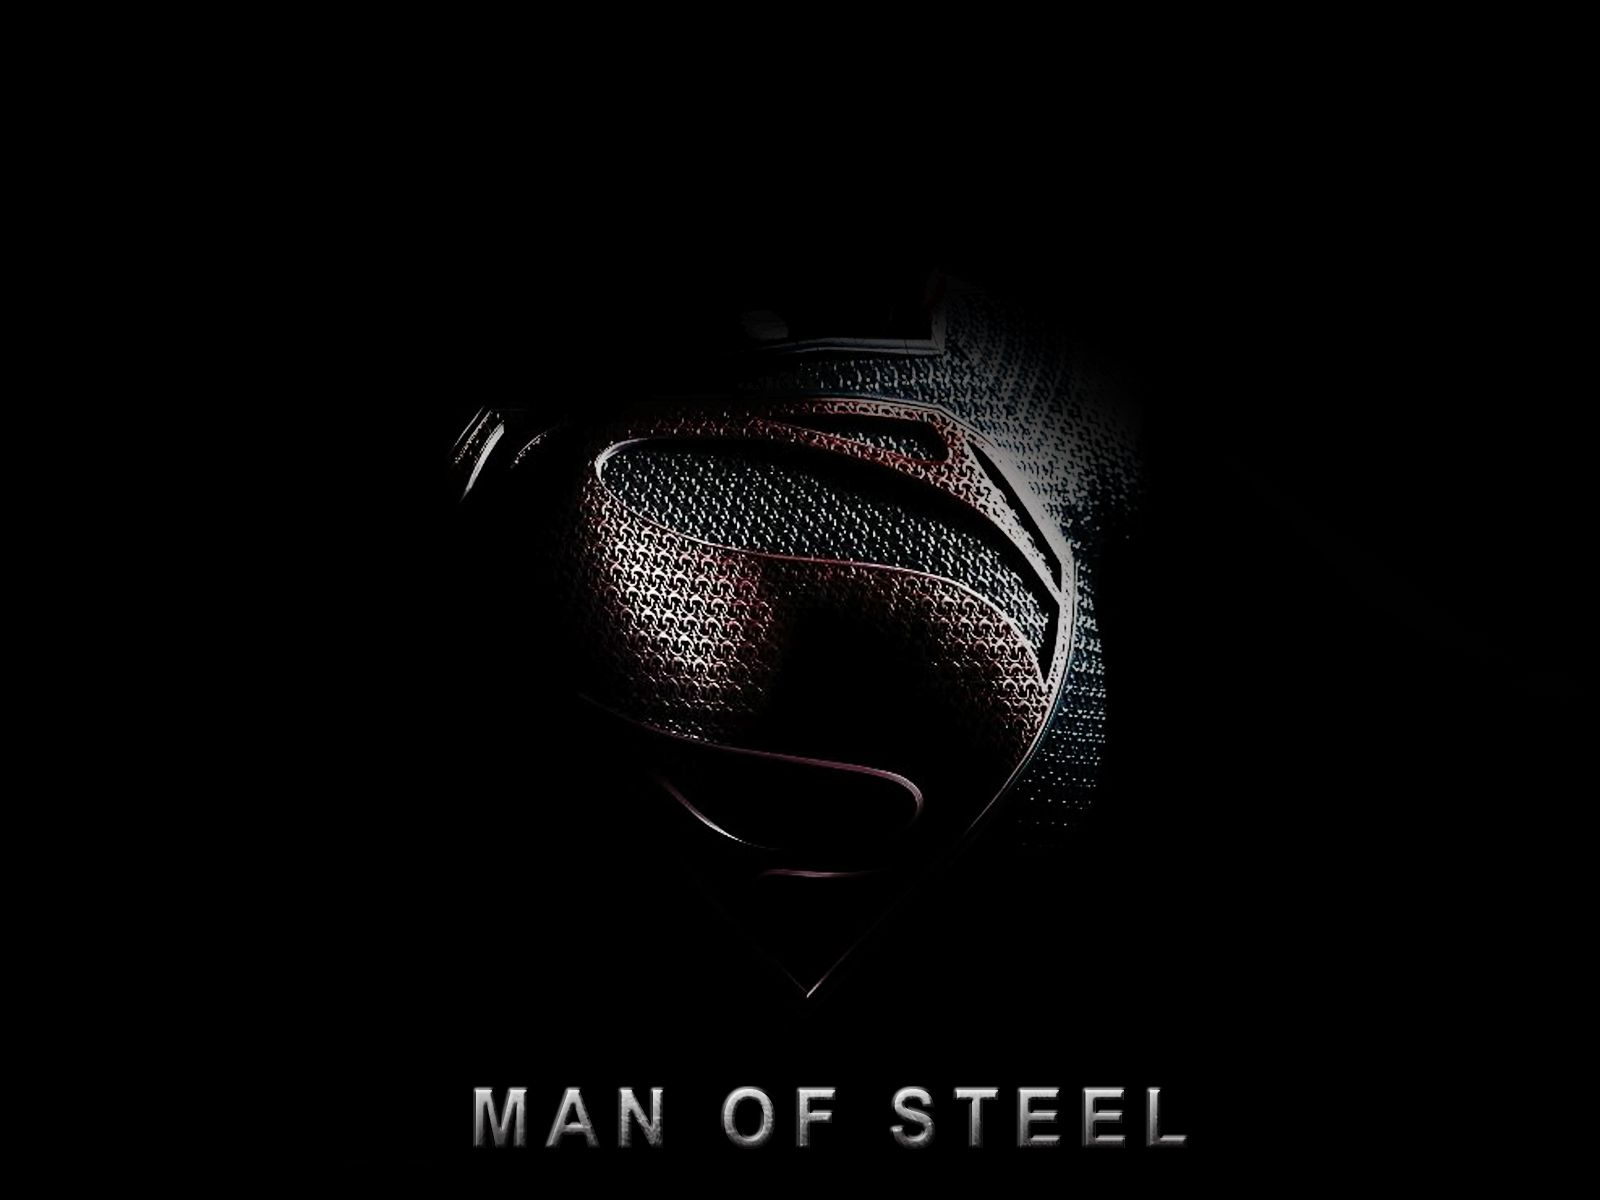 Man of steel movie wallpapers hd wallpapers wallpapers for desktop man of steel movie wallpapers hd wallpapers voltagebd